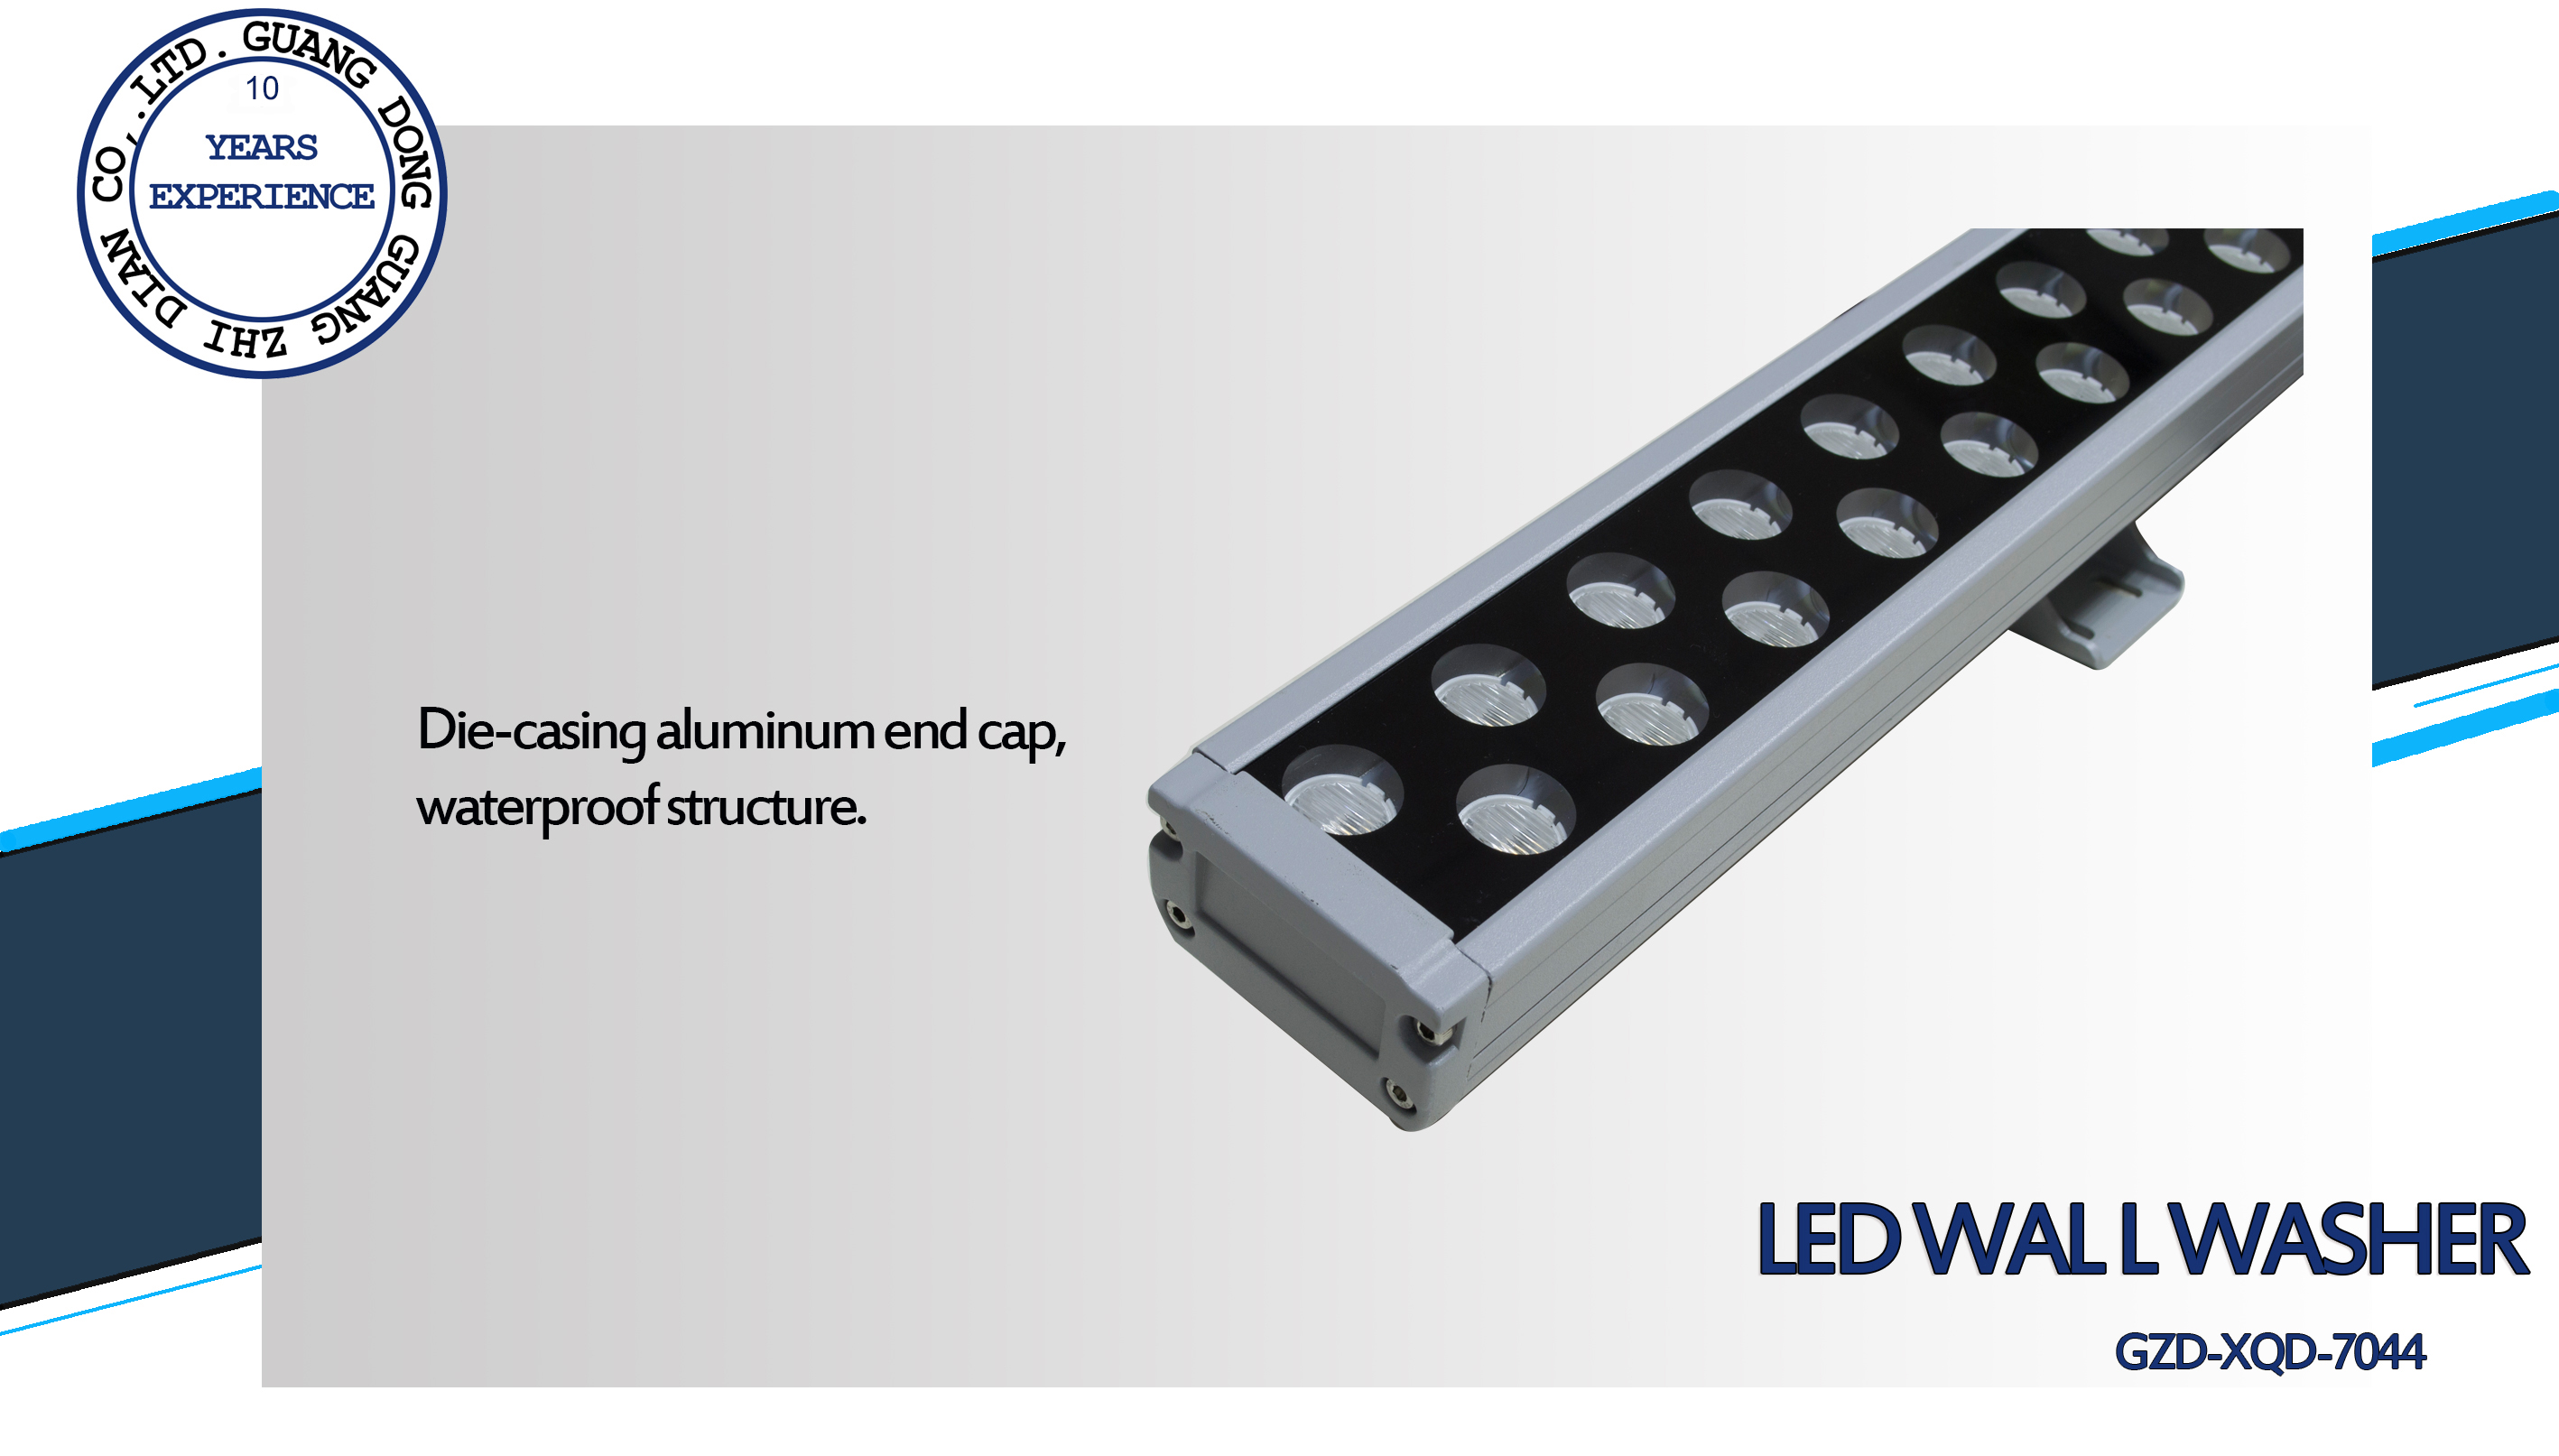 2 led wall washer